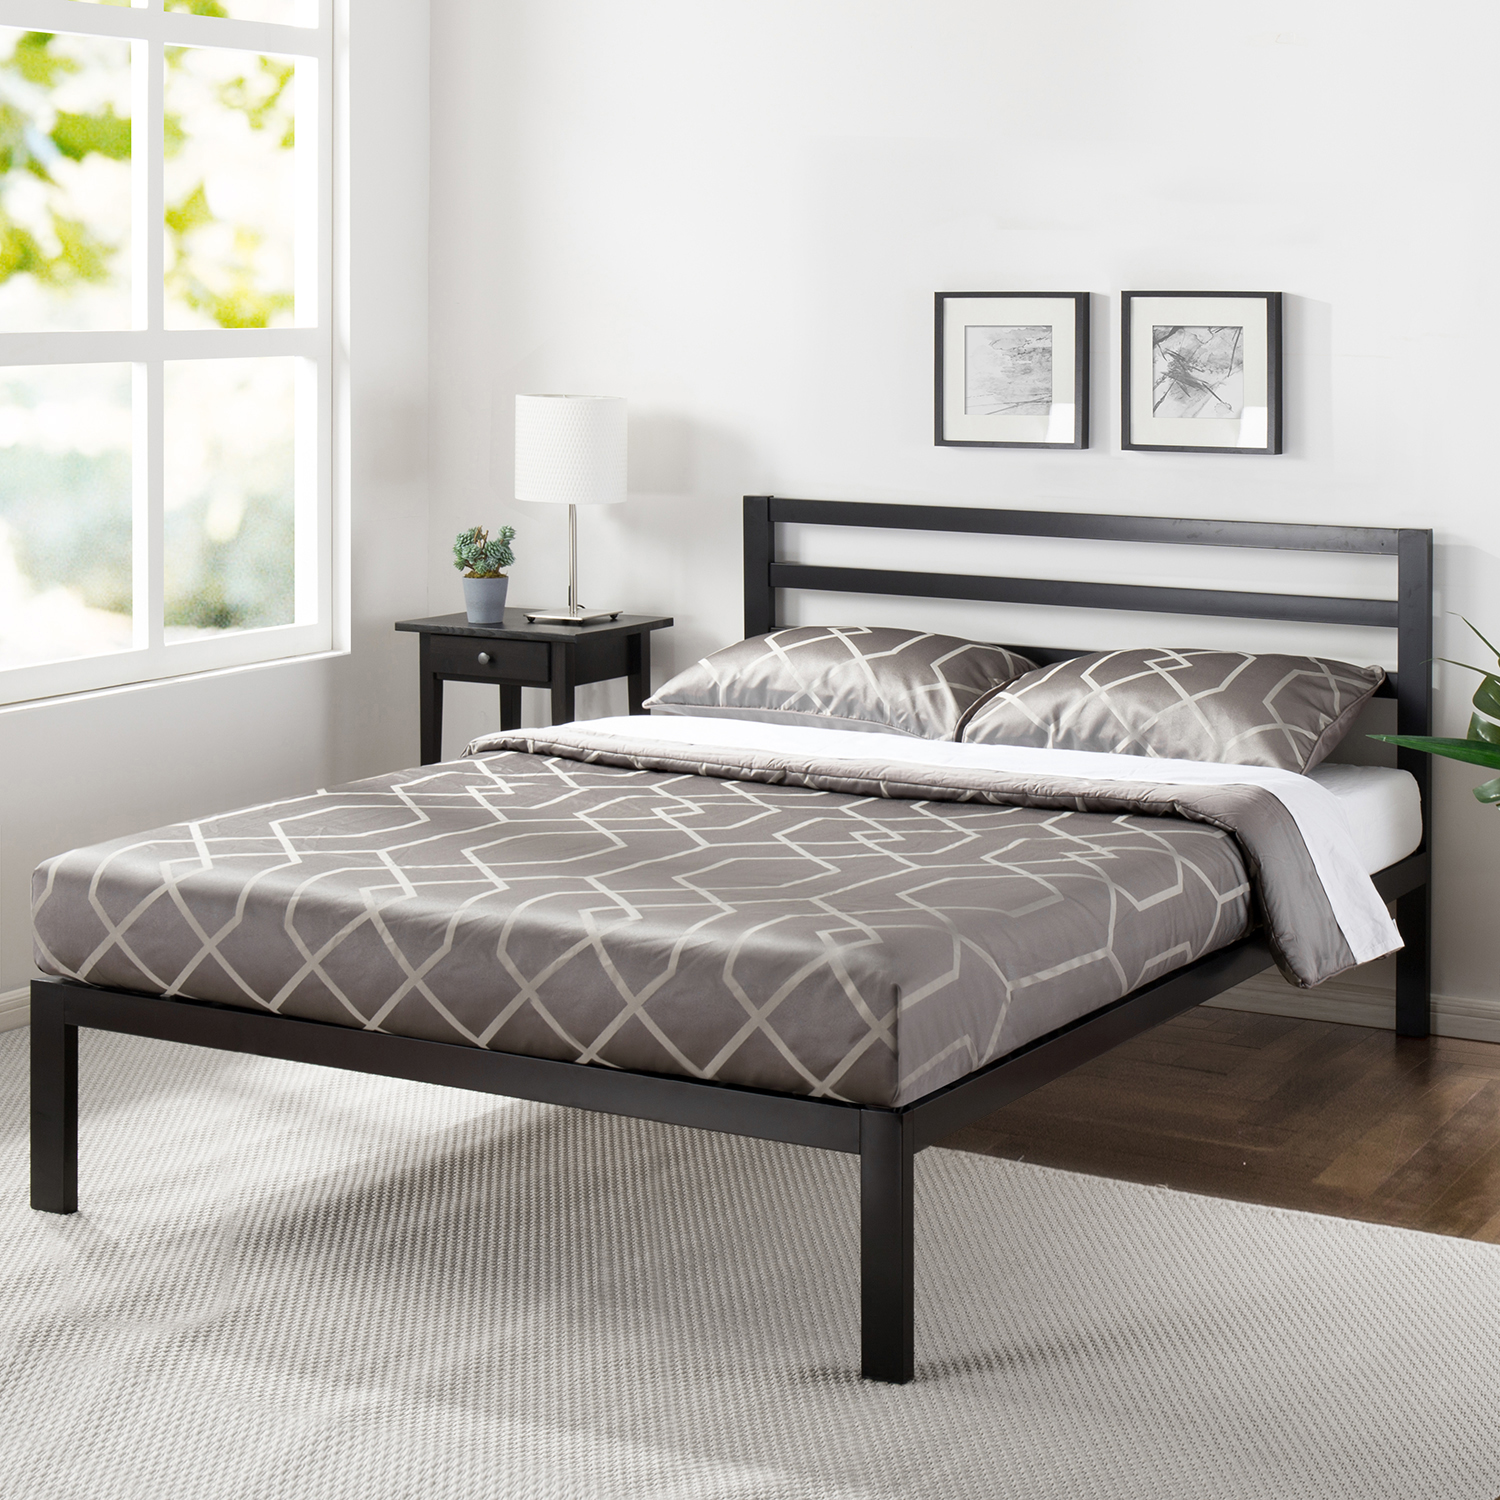 Mainstays Metal Platform Bed with Metal Headboard